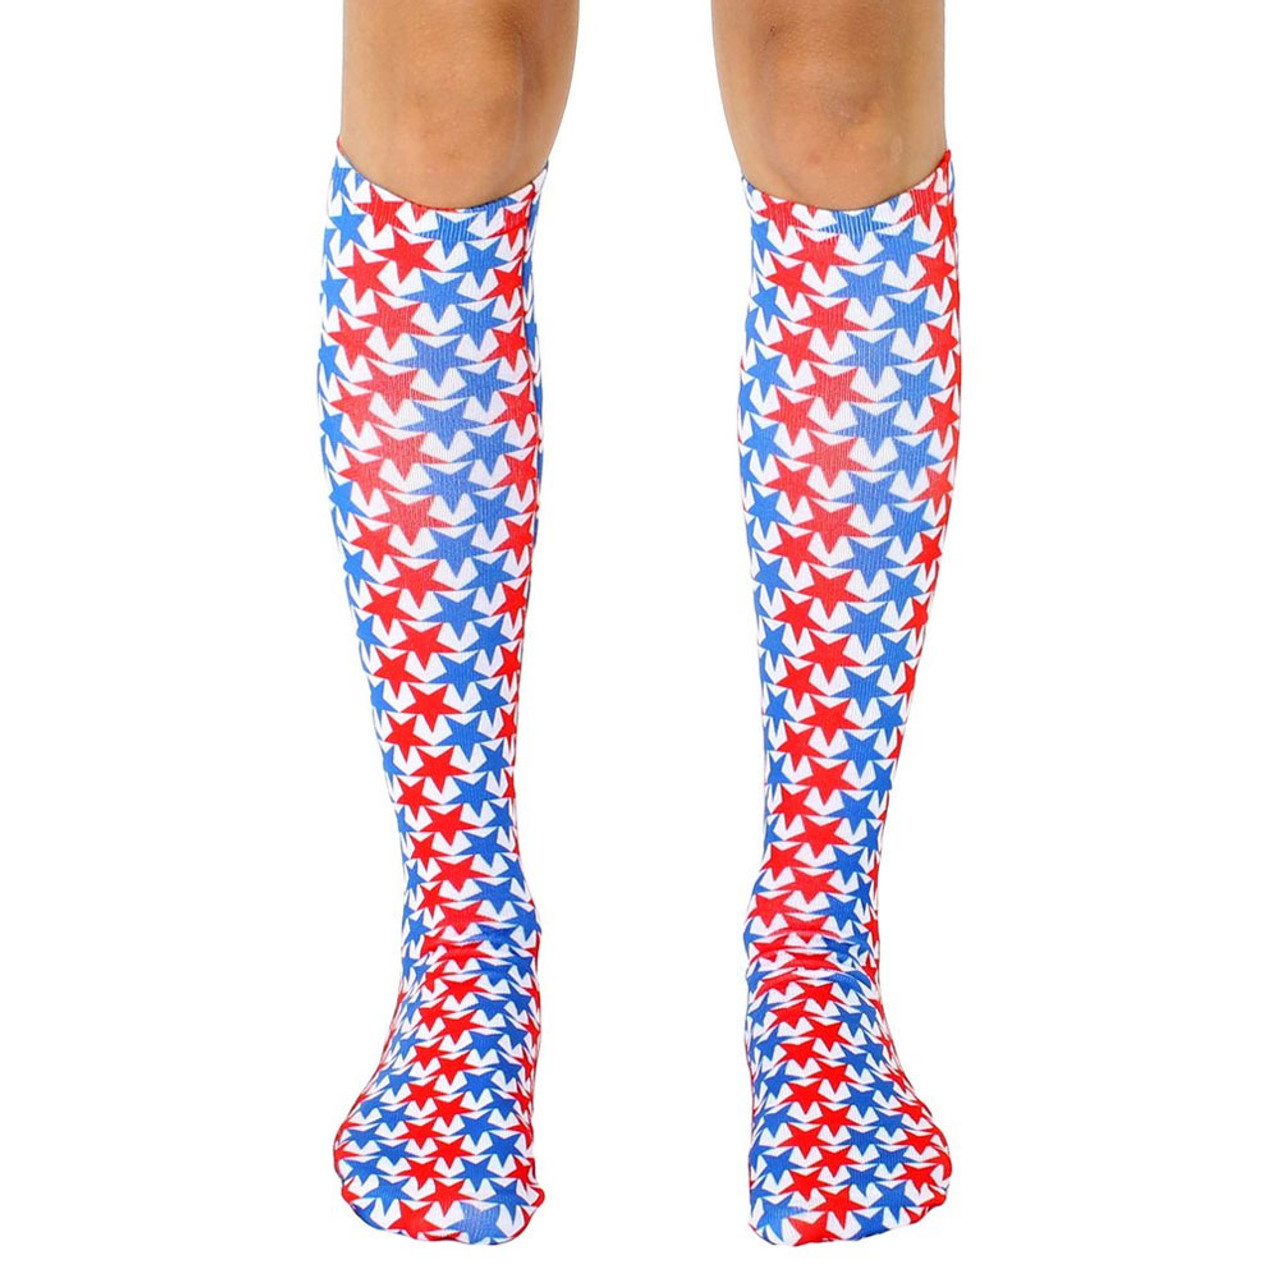 430b294e0f7 Men s or Women s Knee High Socks USA Stars Red White and Blue - Purple  Leopard Boutique